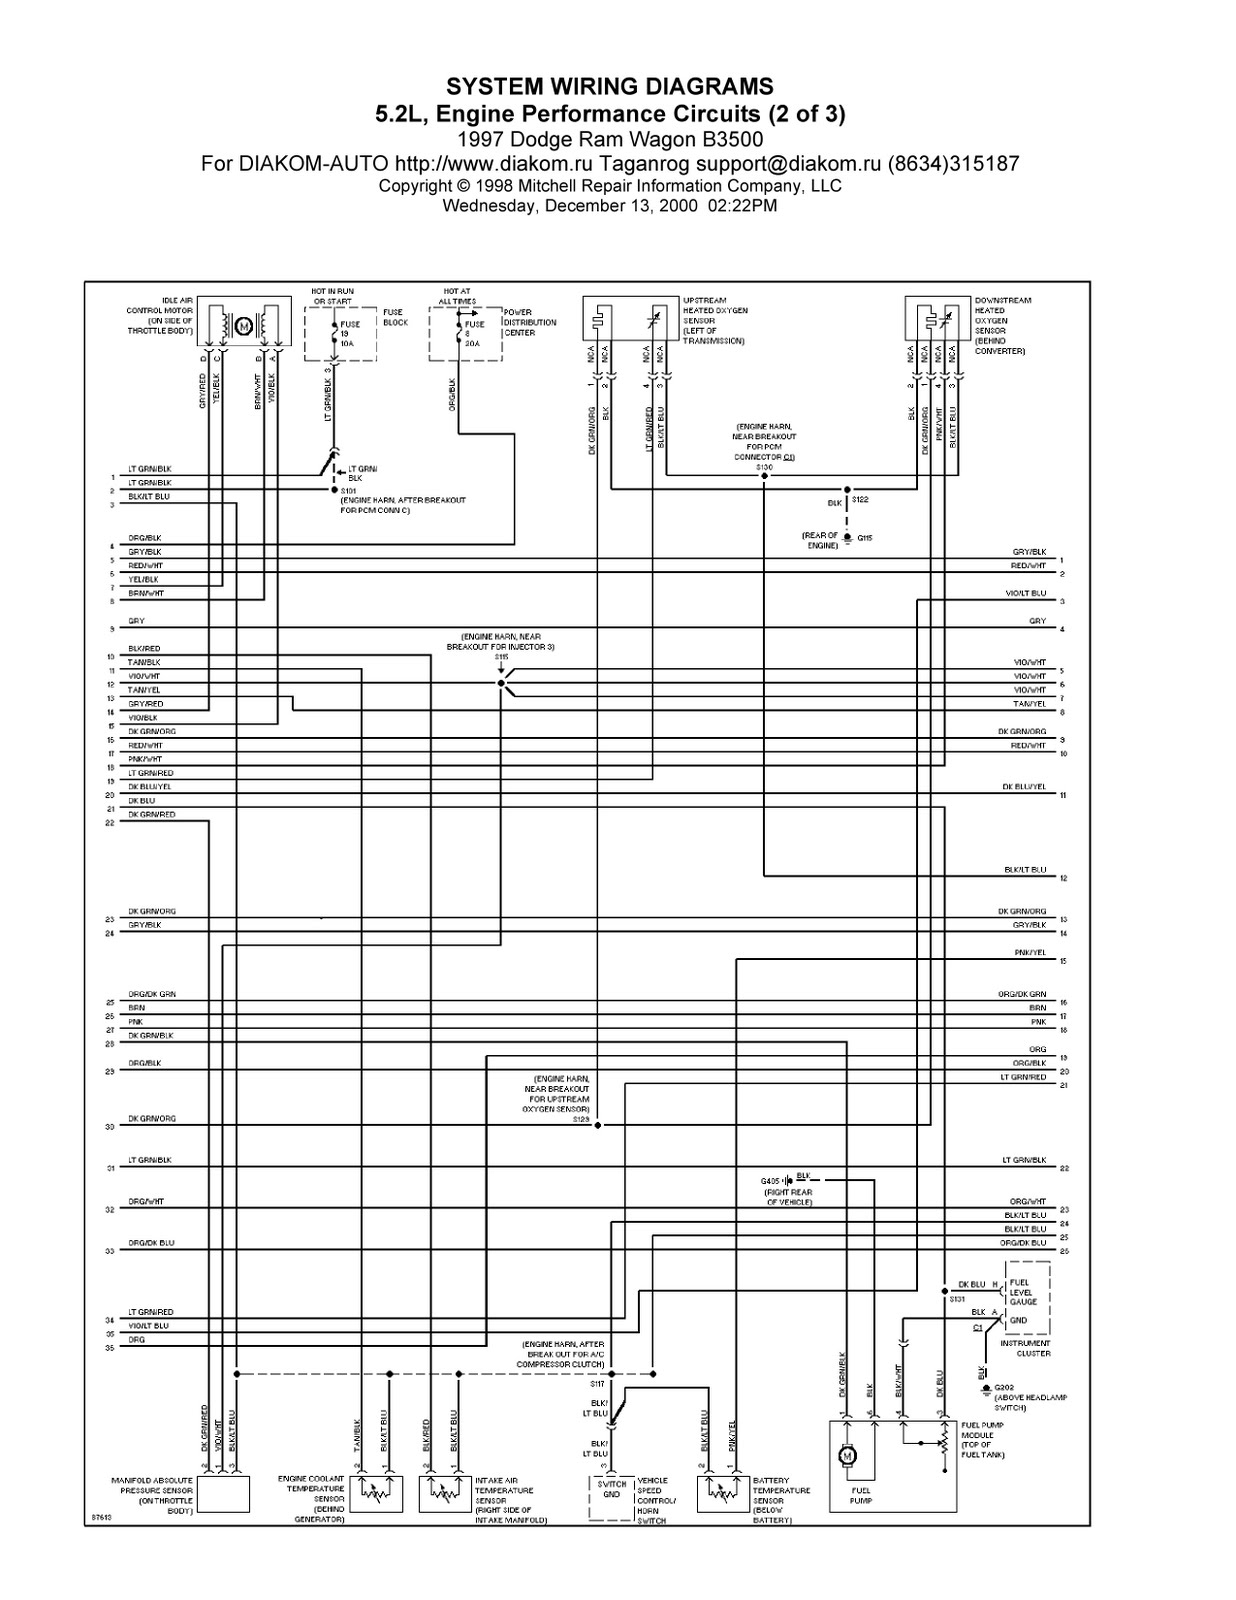 For A 1997 Dodge Ram Van Wiring Diagram Diagrams 97 3500 Trailer Wagon B3500 System 5 2l